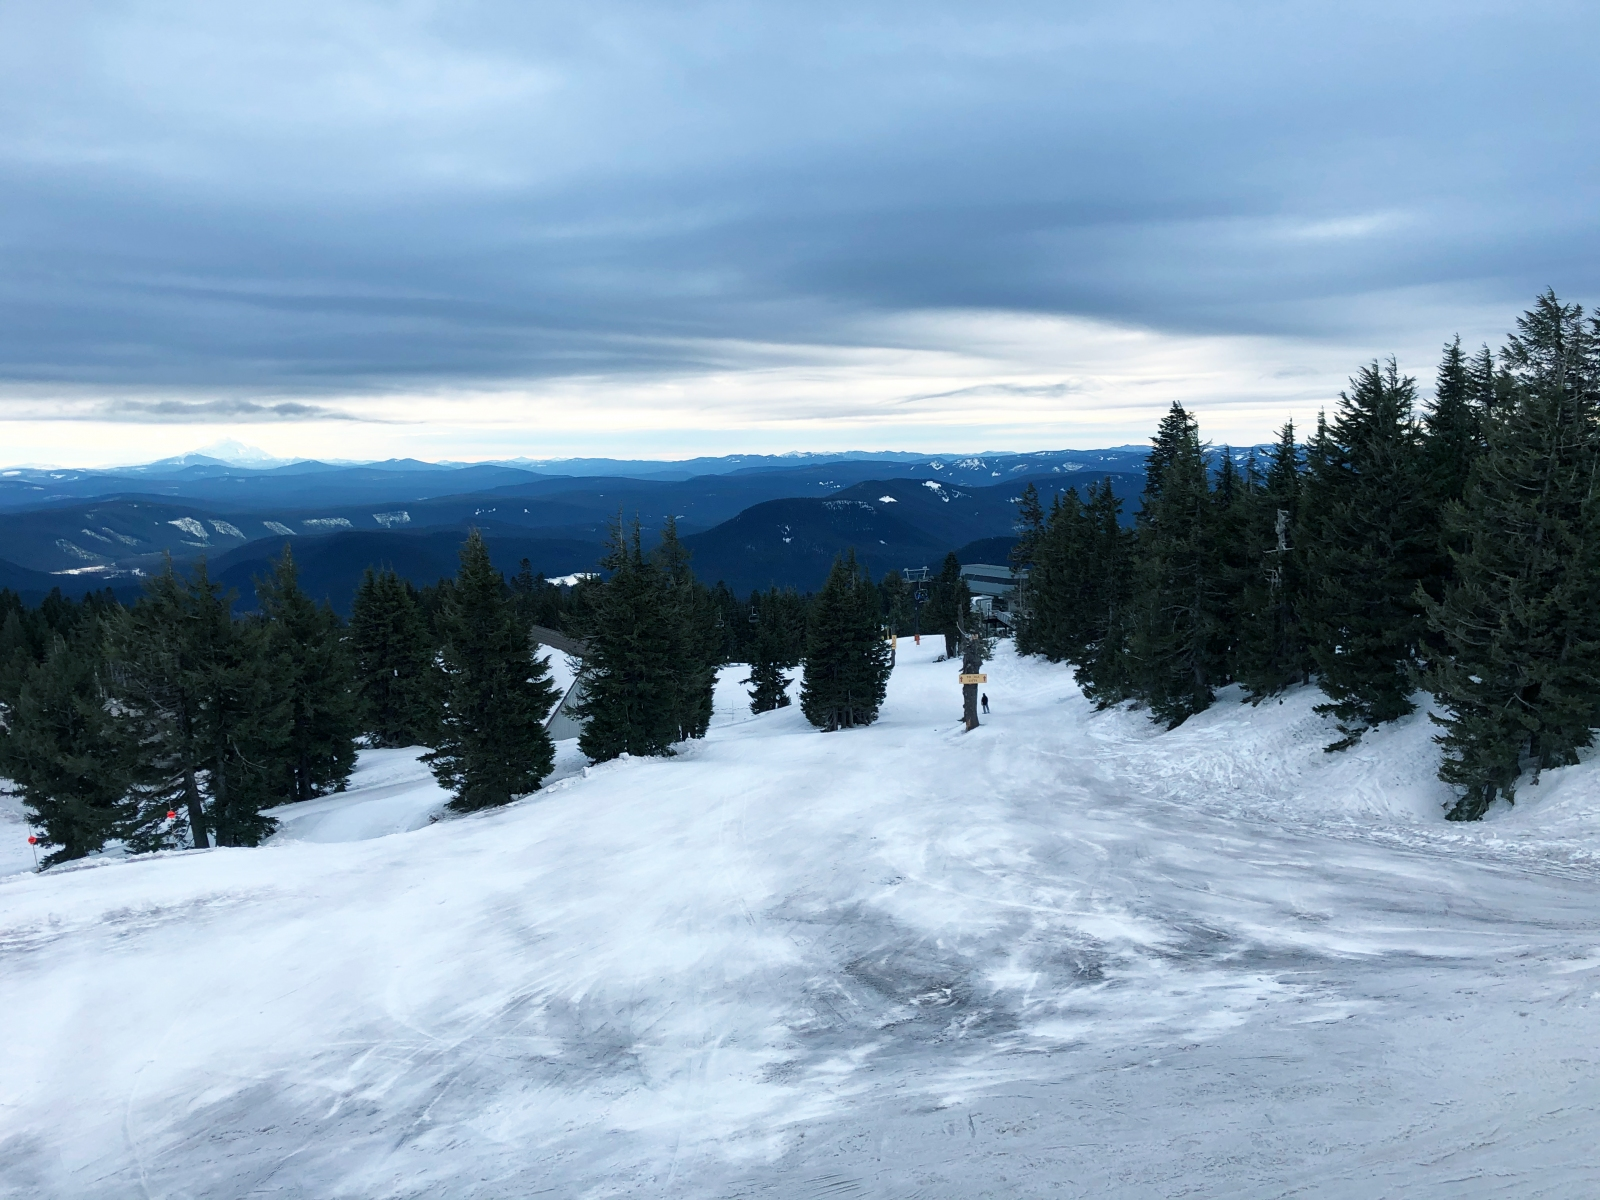 Capturing the Mountain: Mount Hood Ski Lodges Open to the Public